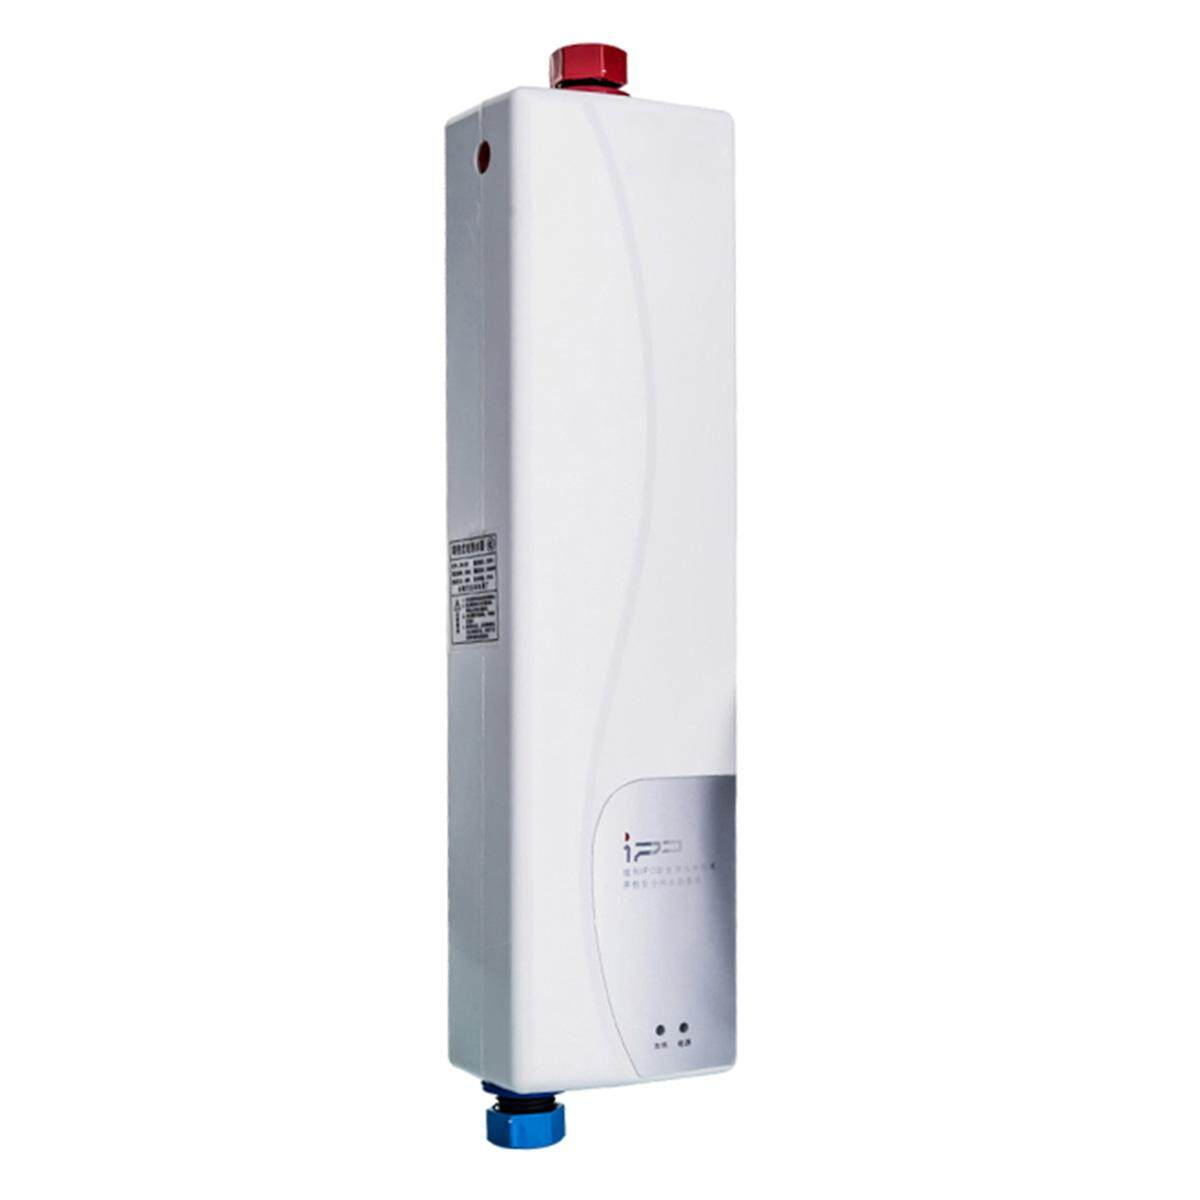 3000W 220V Electric Water Heater Instant Tankless Water Heater